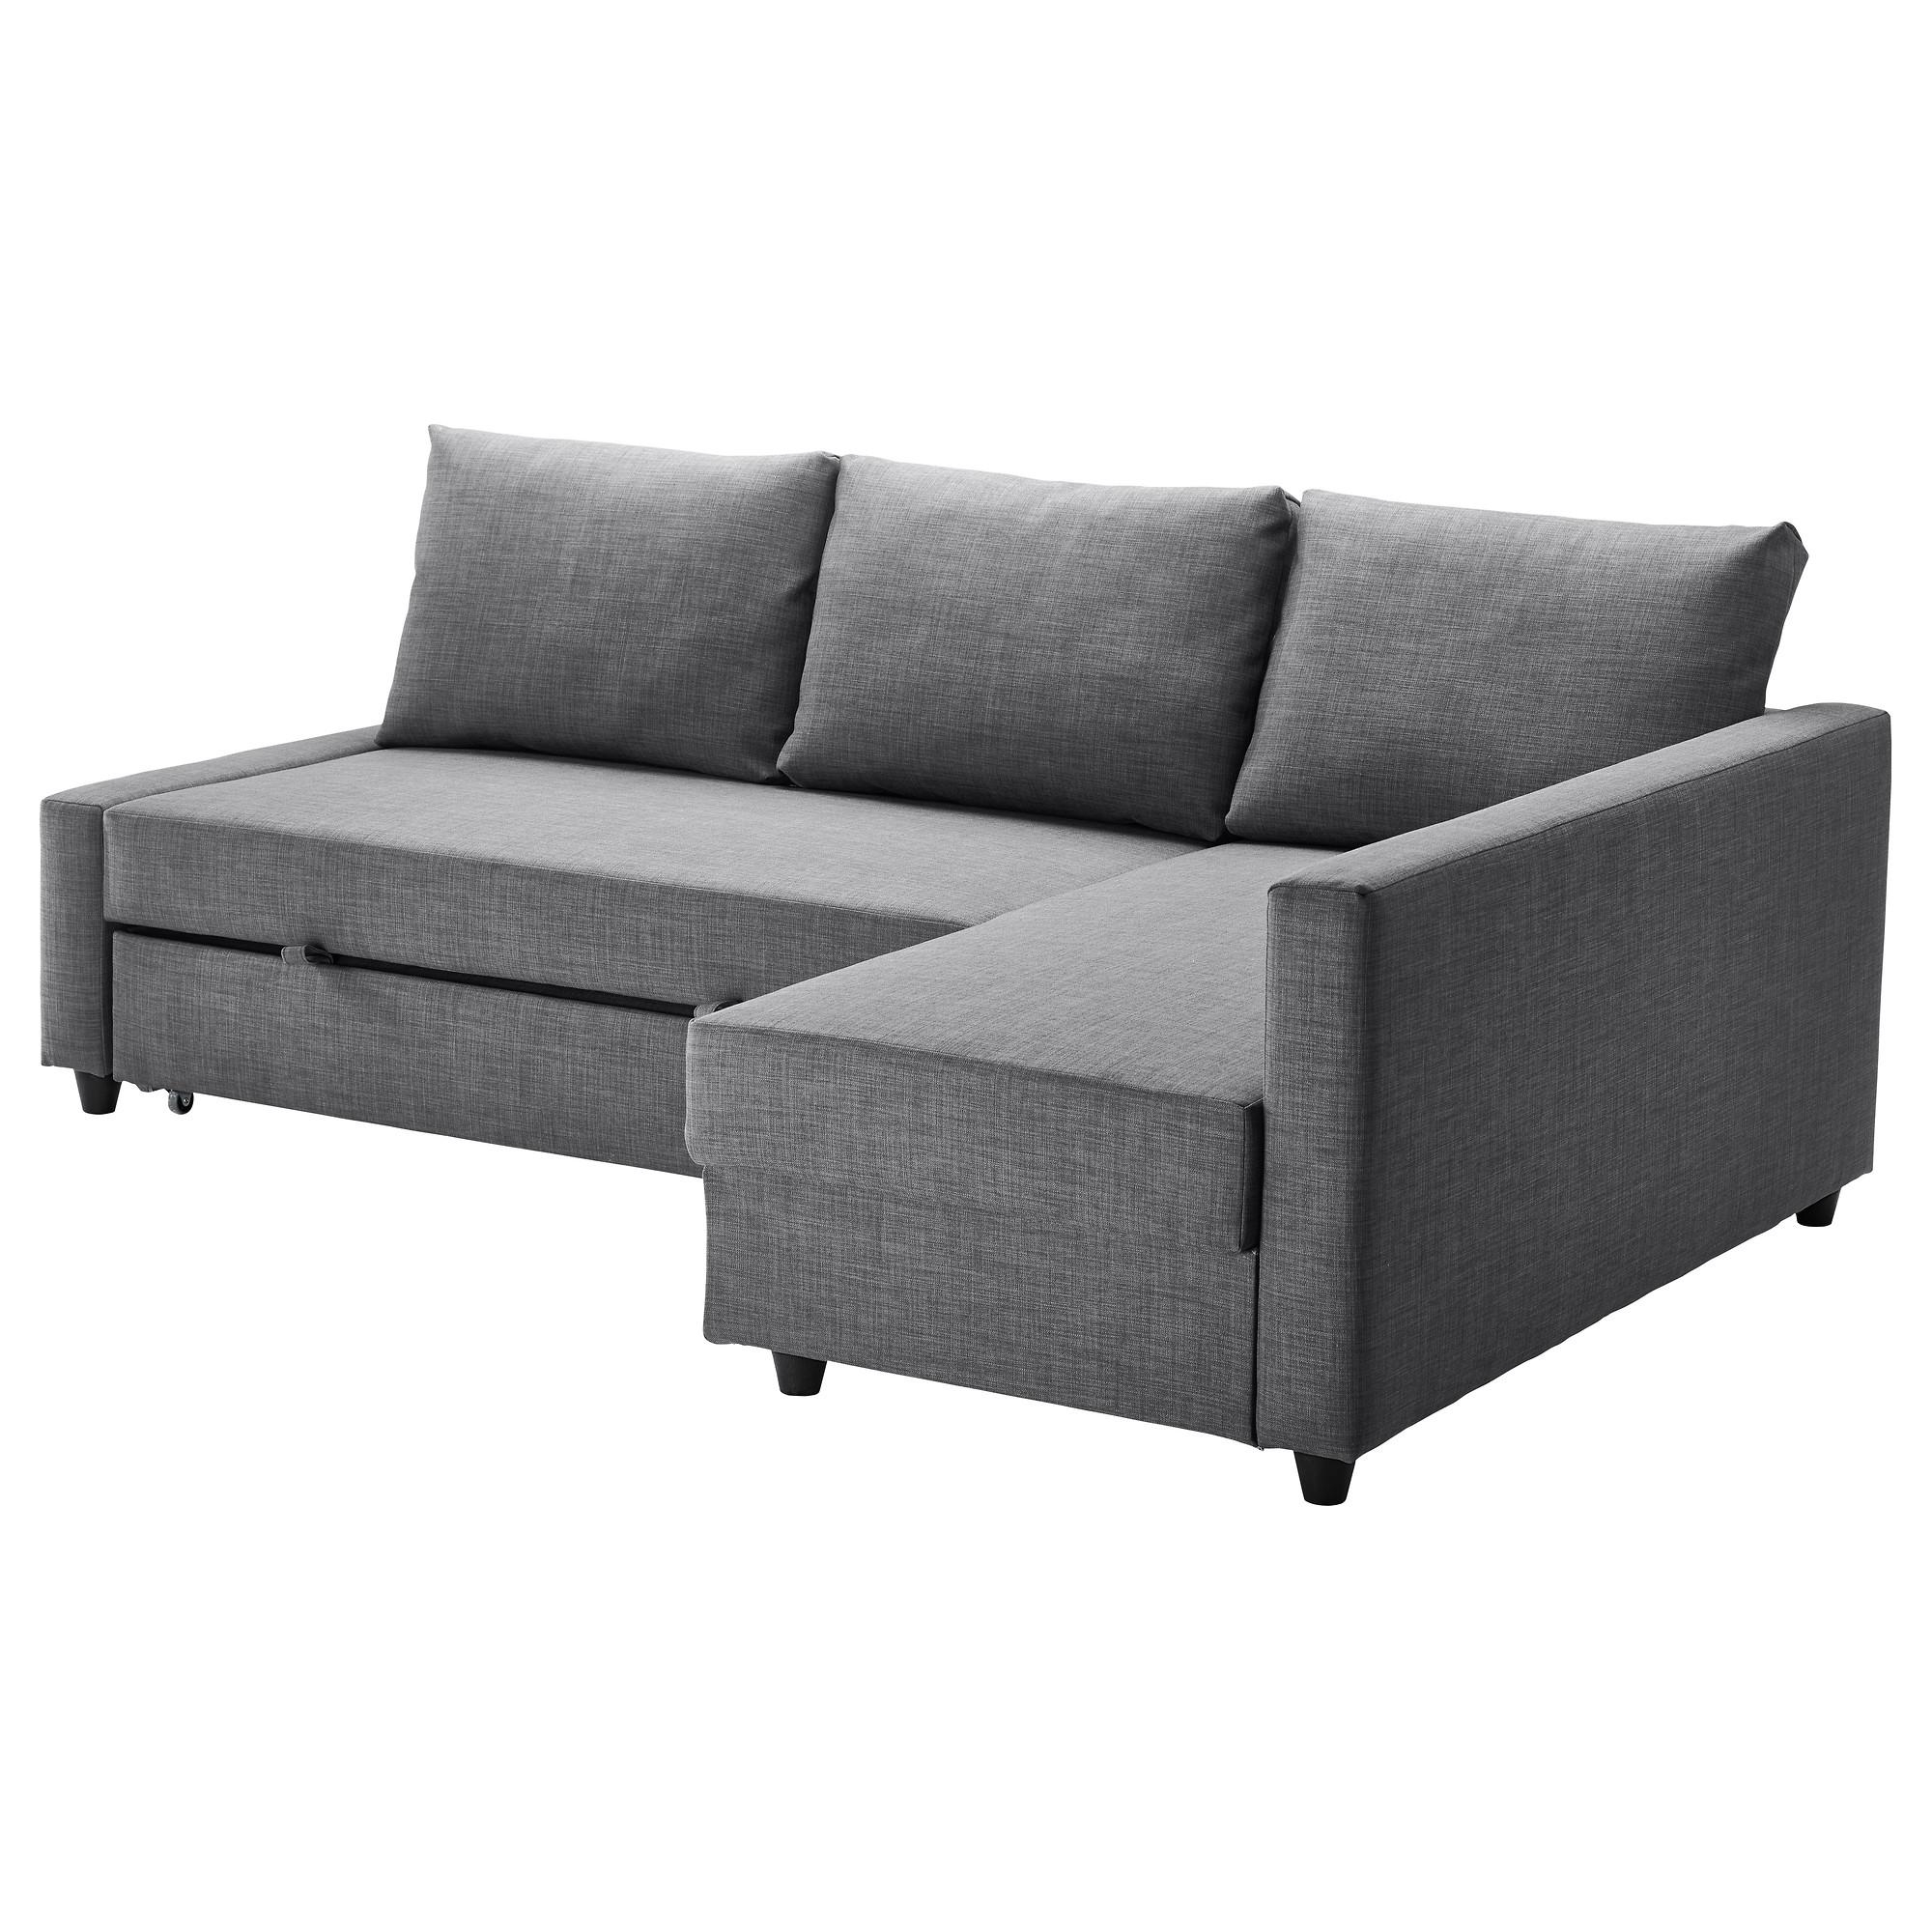 Friheten Corner Sofa Bed With Storage Skiftebo Dark Grey – Ikea Regarding Cheap Corner Sofa Beds (Image 8 of 20)